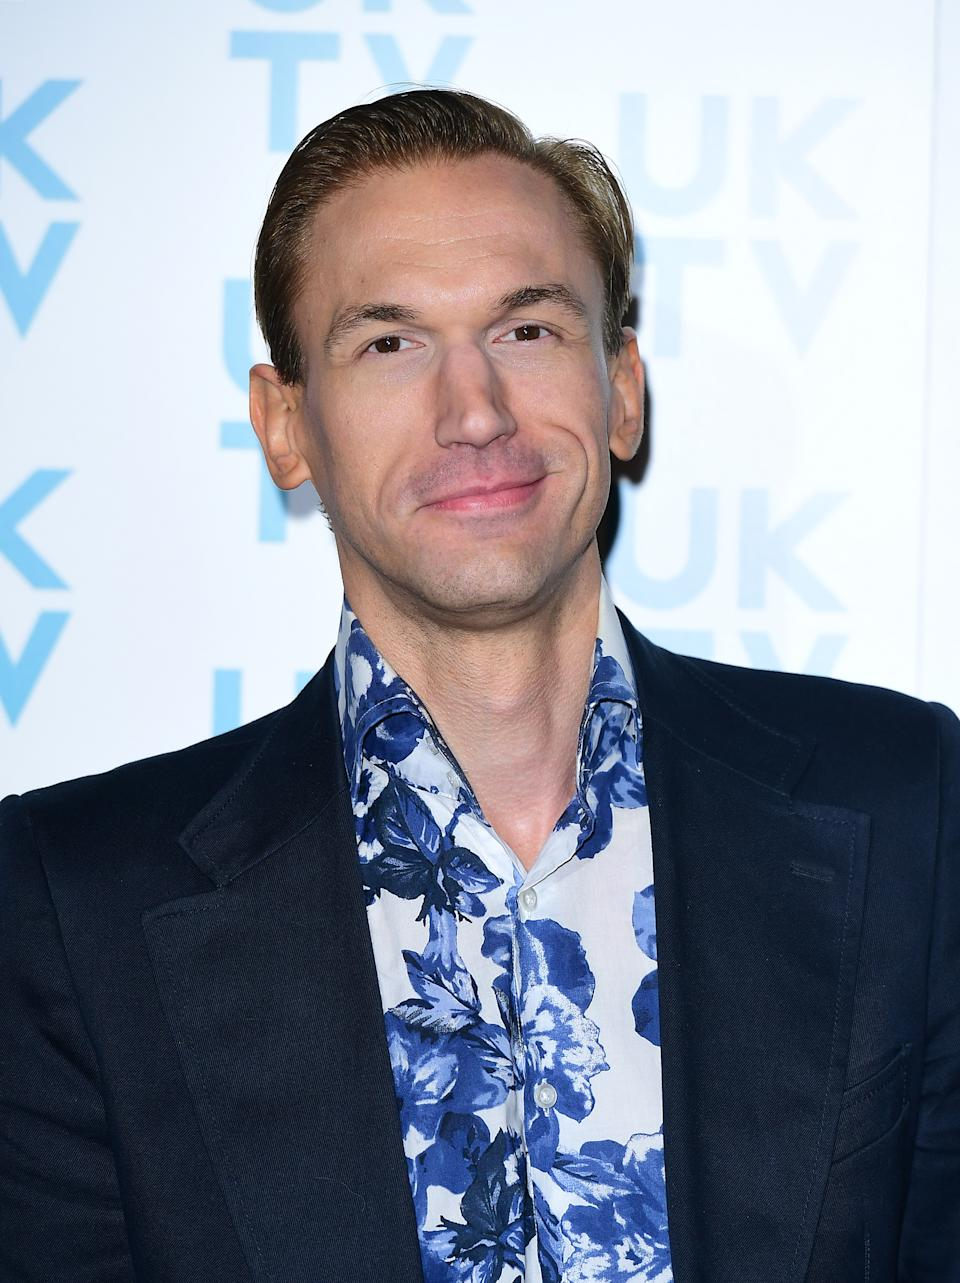 Dr Christian Jessen arriving for the UKTV Live new season launch at Claridge's hotel, London. (Photo by Ian West/PA Images via Getty Images)